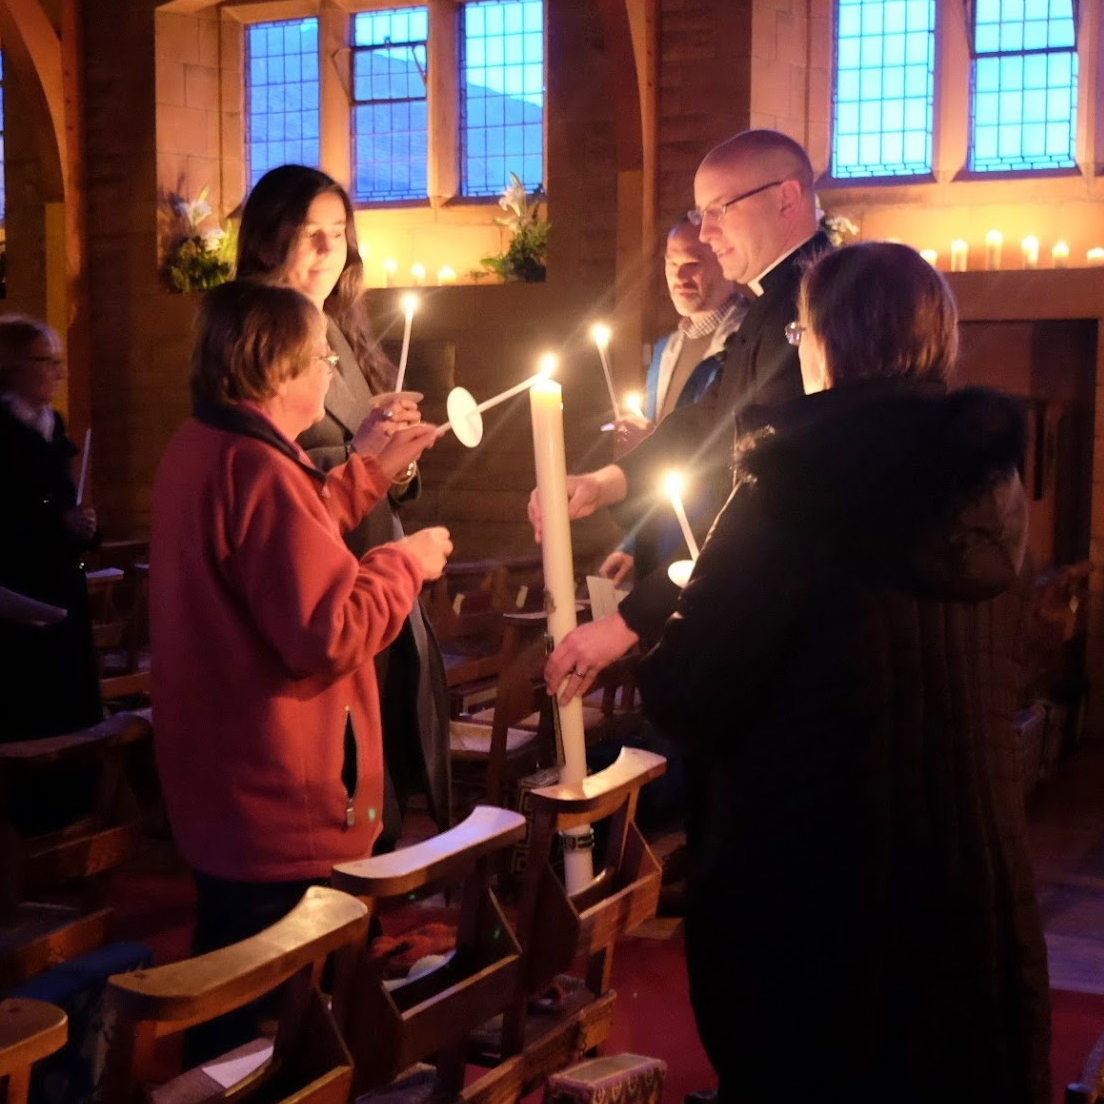 Easter Vigil at St. Ninians (Photo by Linda Rayner)